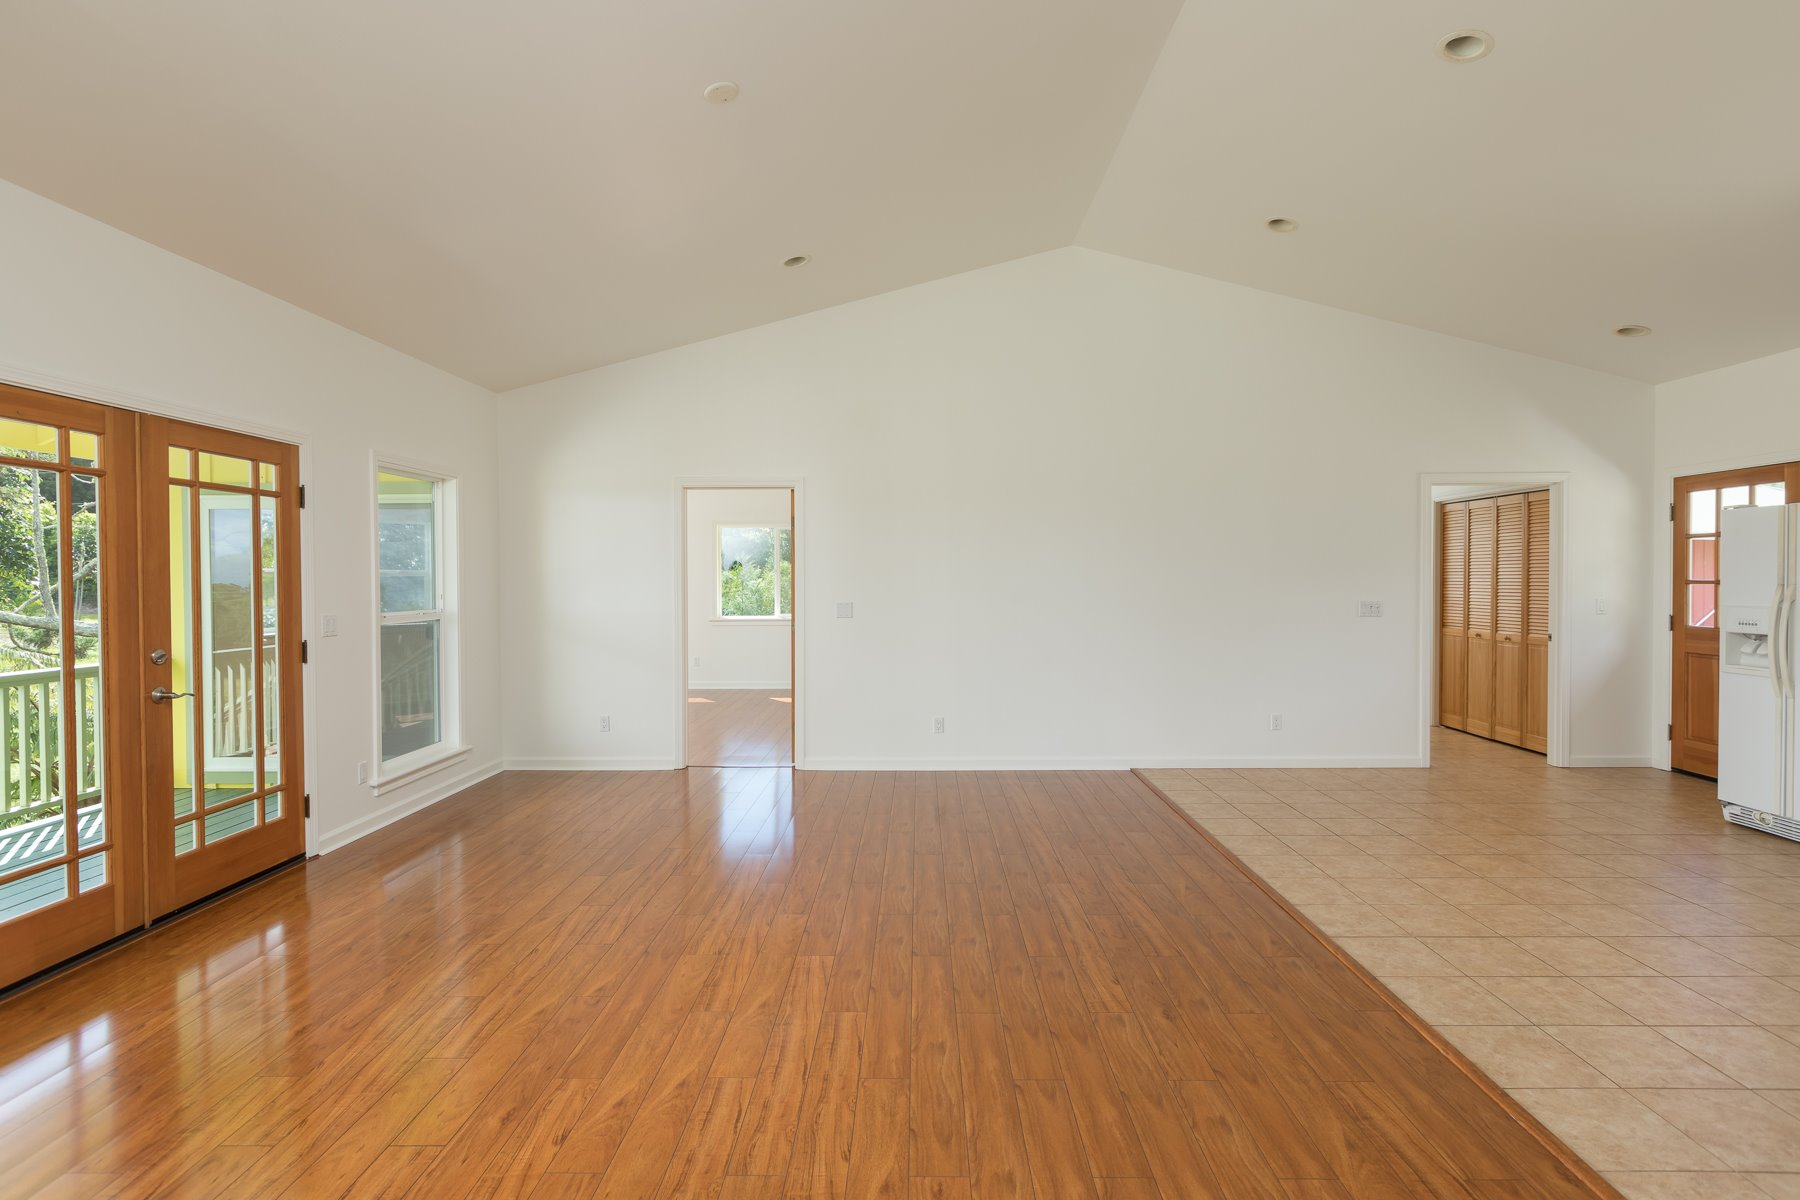 Light filled living room of the Yellow Twin. The Red Twin is identical. Hardwood as well as tiled flooring, high ceilings. The double glass doors to the left lead to the lanai and look to the tree farm